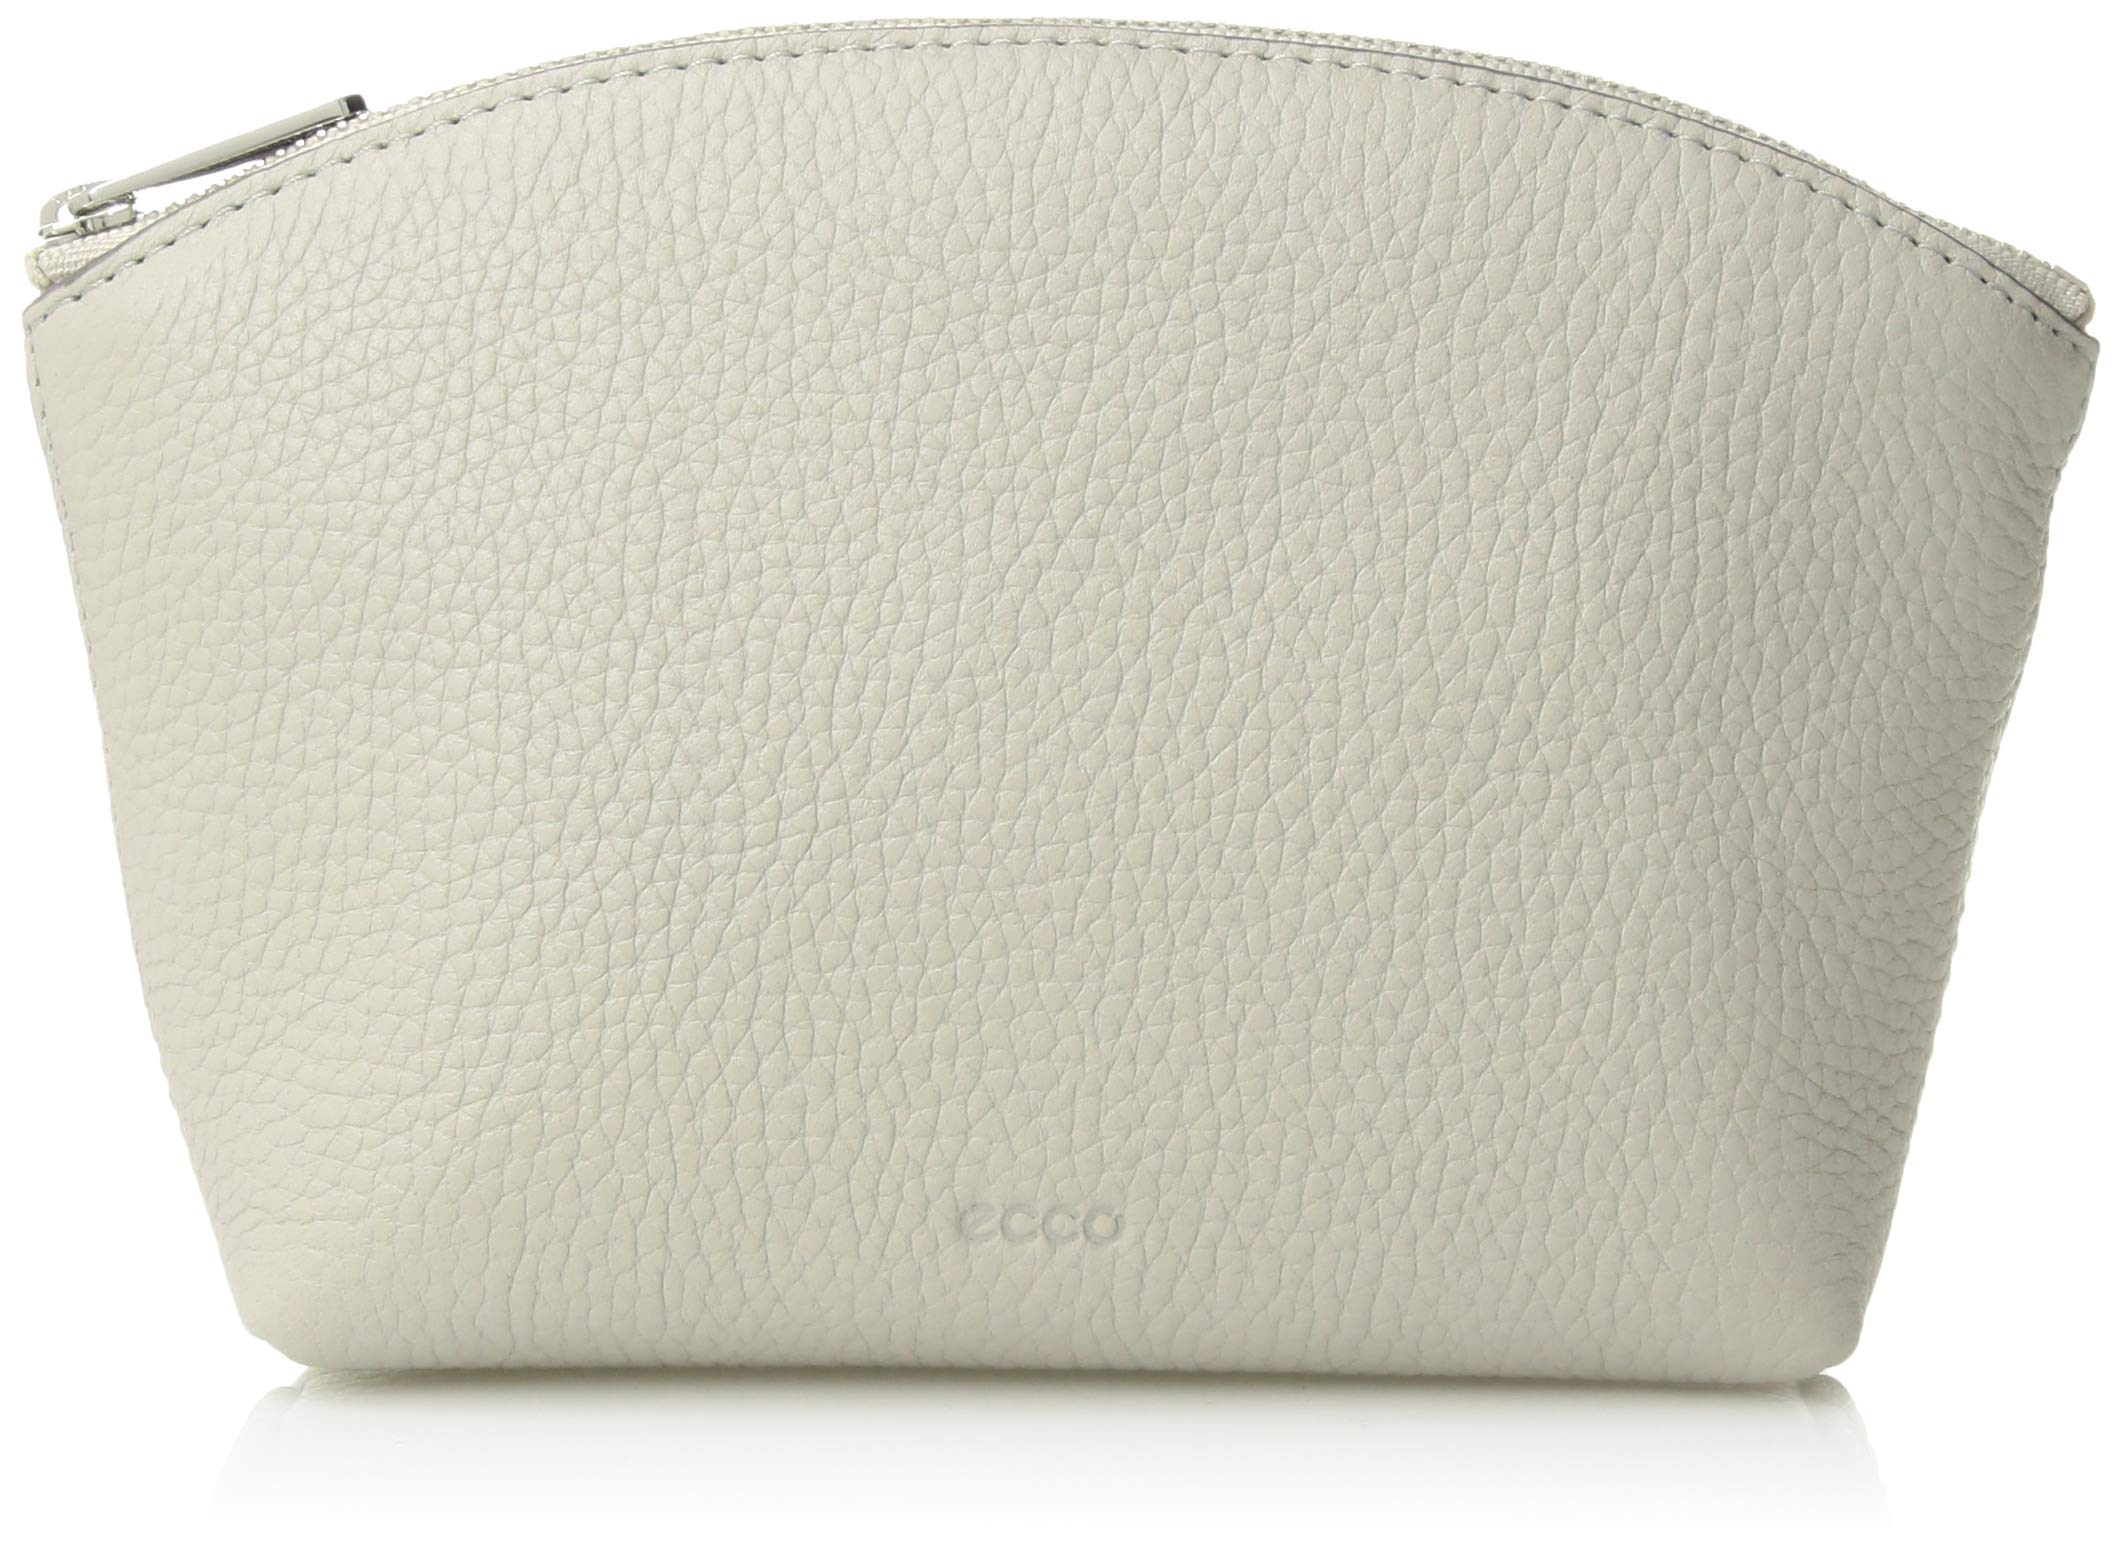 ECCO SP 3 Pouch Set,  Gravel/Rose dust/Arona, One Size